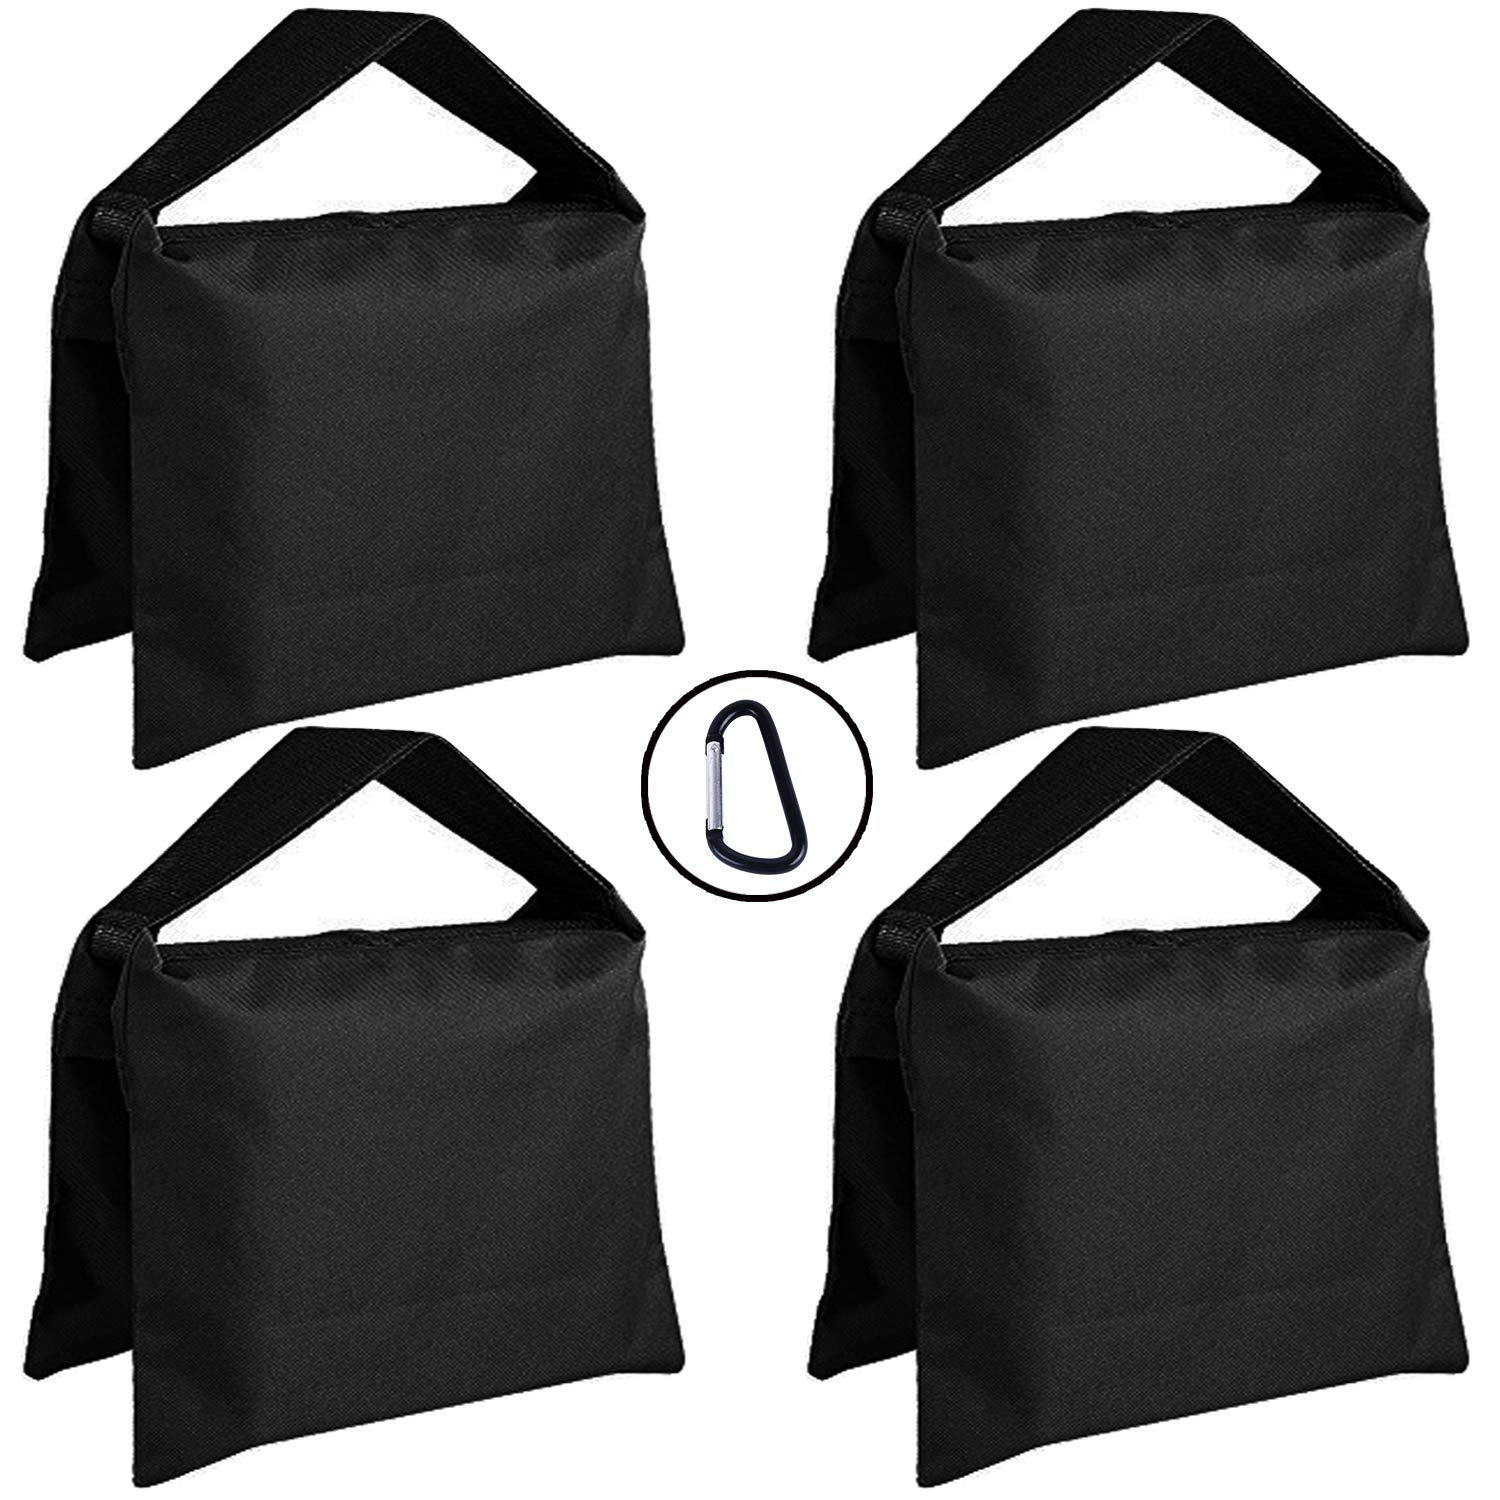 Super Heavy Duty ABCCANOPY Sandbag Saddlebag Design 4 Weight Bags for Photo Video Studio Stand,Backyard,Outdoor Patio,Sports (Black)